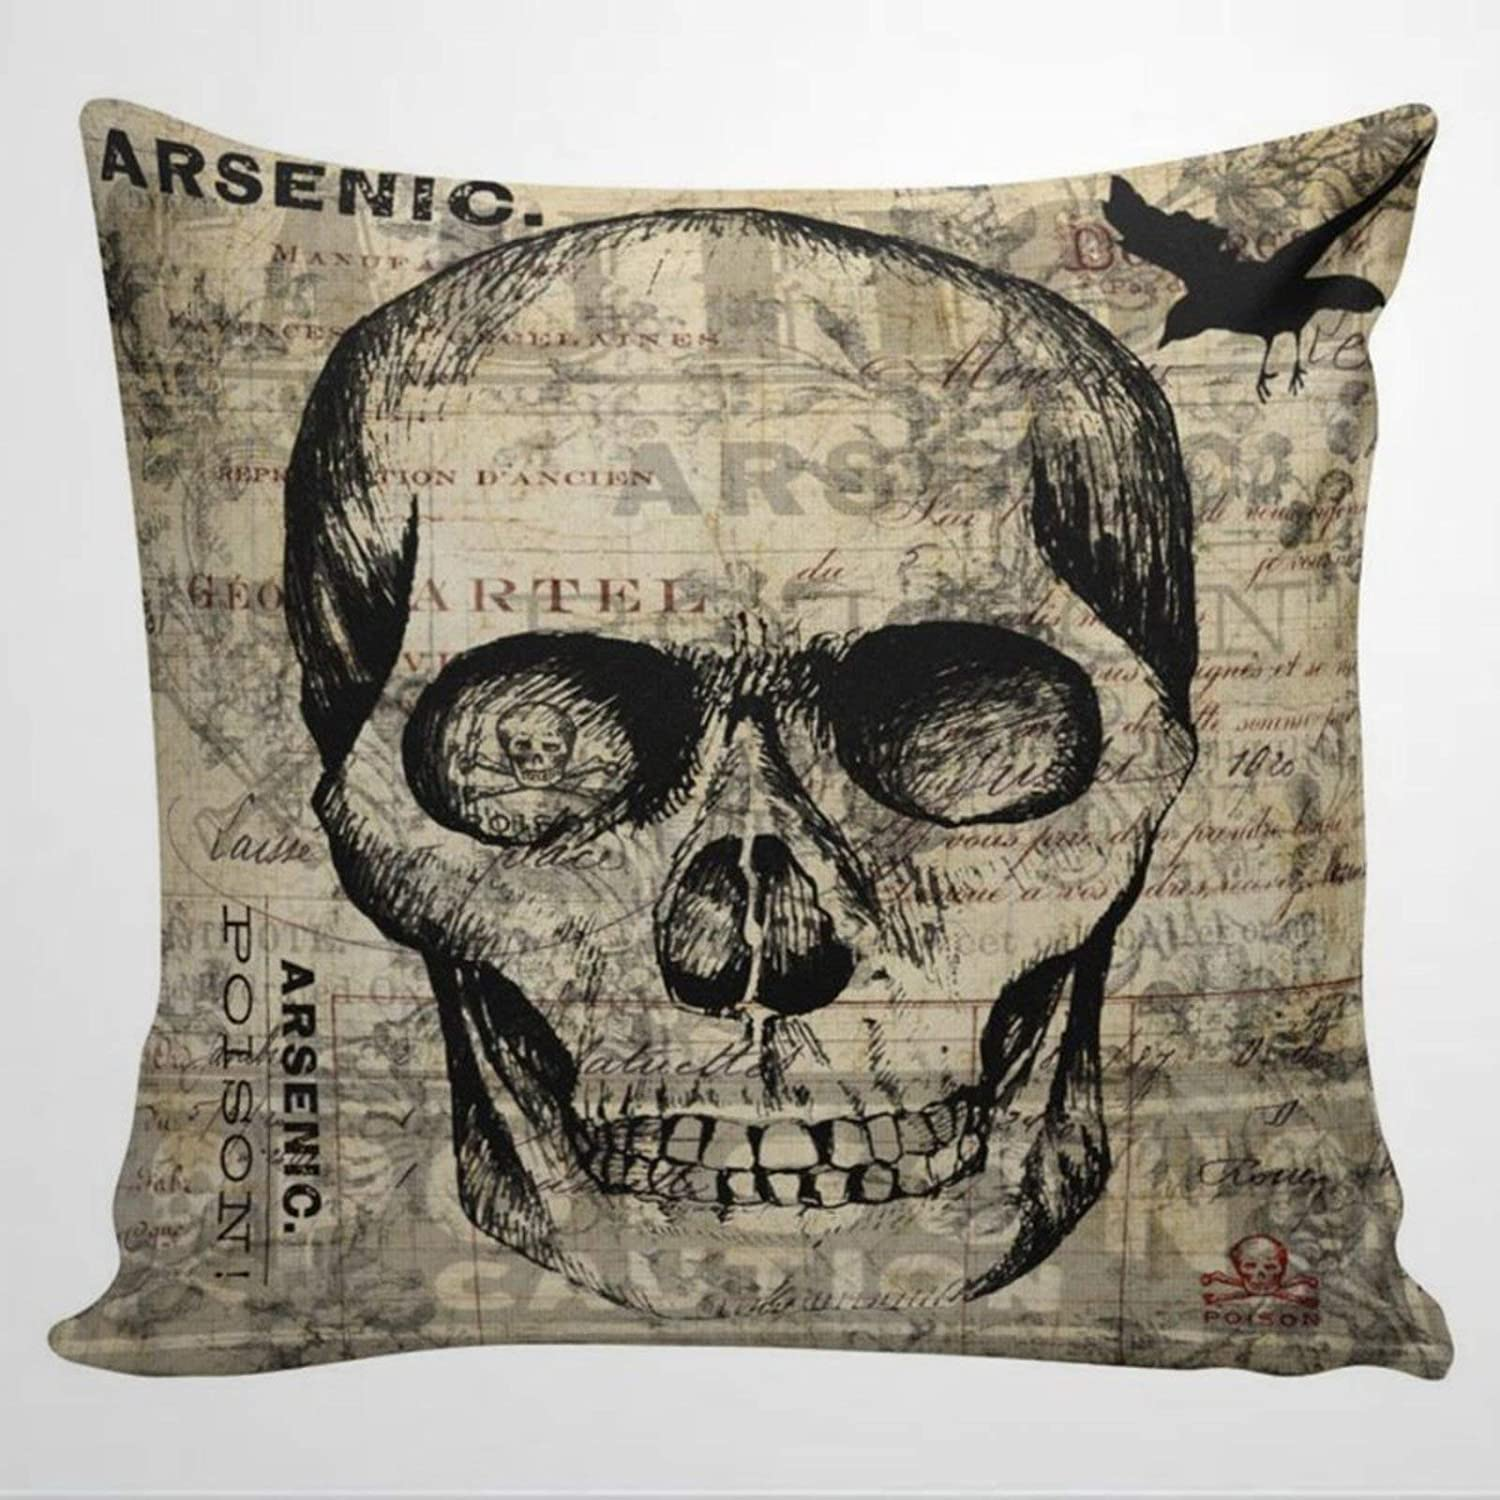 DONL9BAUER Throw Pillow Case, Vintage Halloween Skull Poison Label Arsenic Square Pillow Cover Decorative Cushion Cover for Home Car Sofa Couch Bed Decor, 16x16 Housewarming Gift